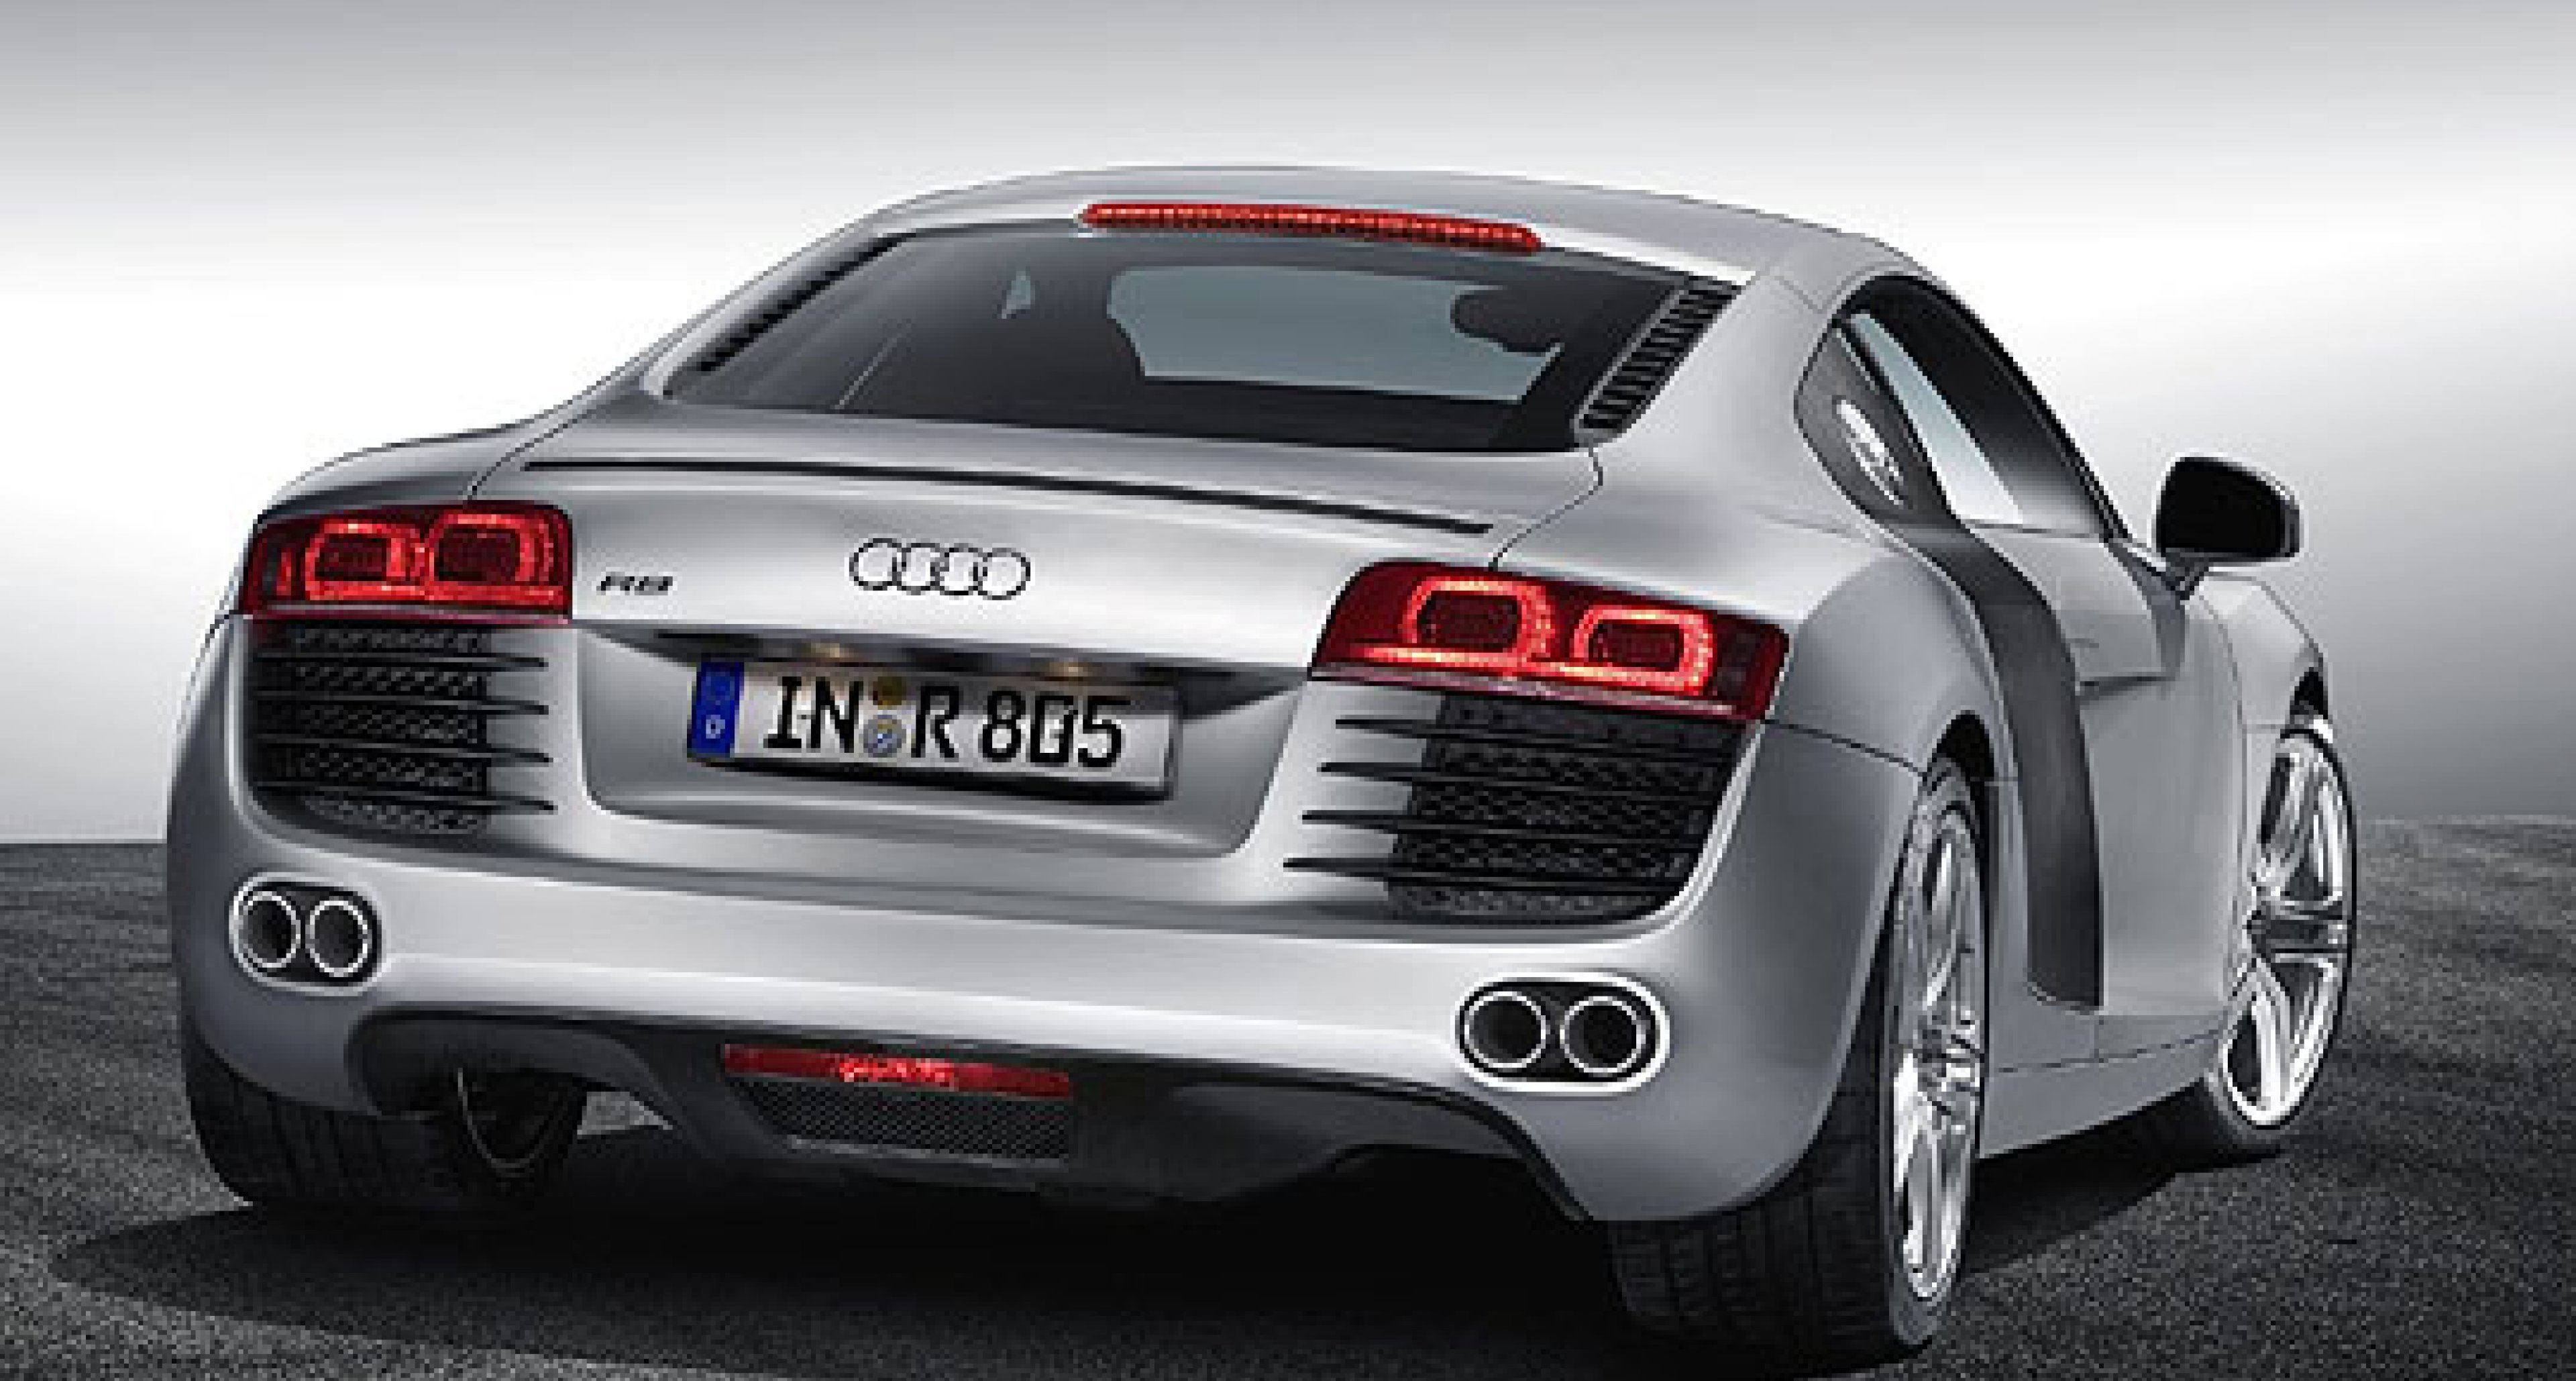 Audi's mid-engined GT revealed in Paris